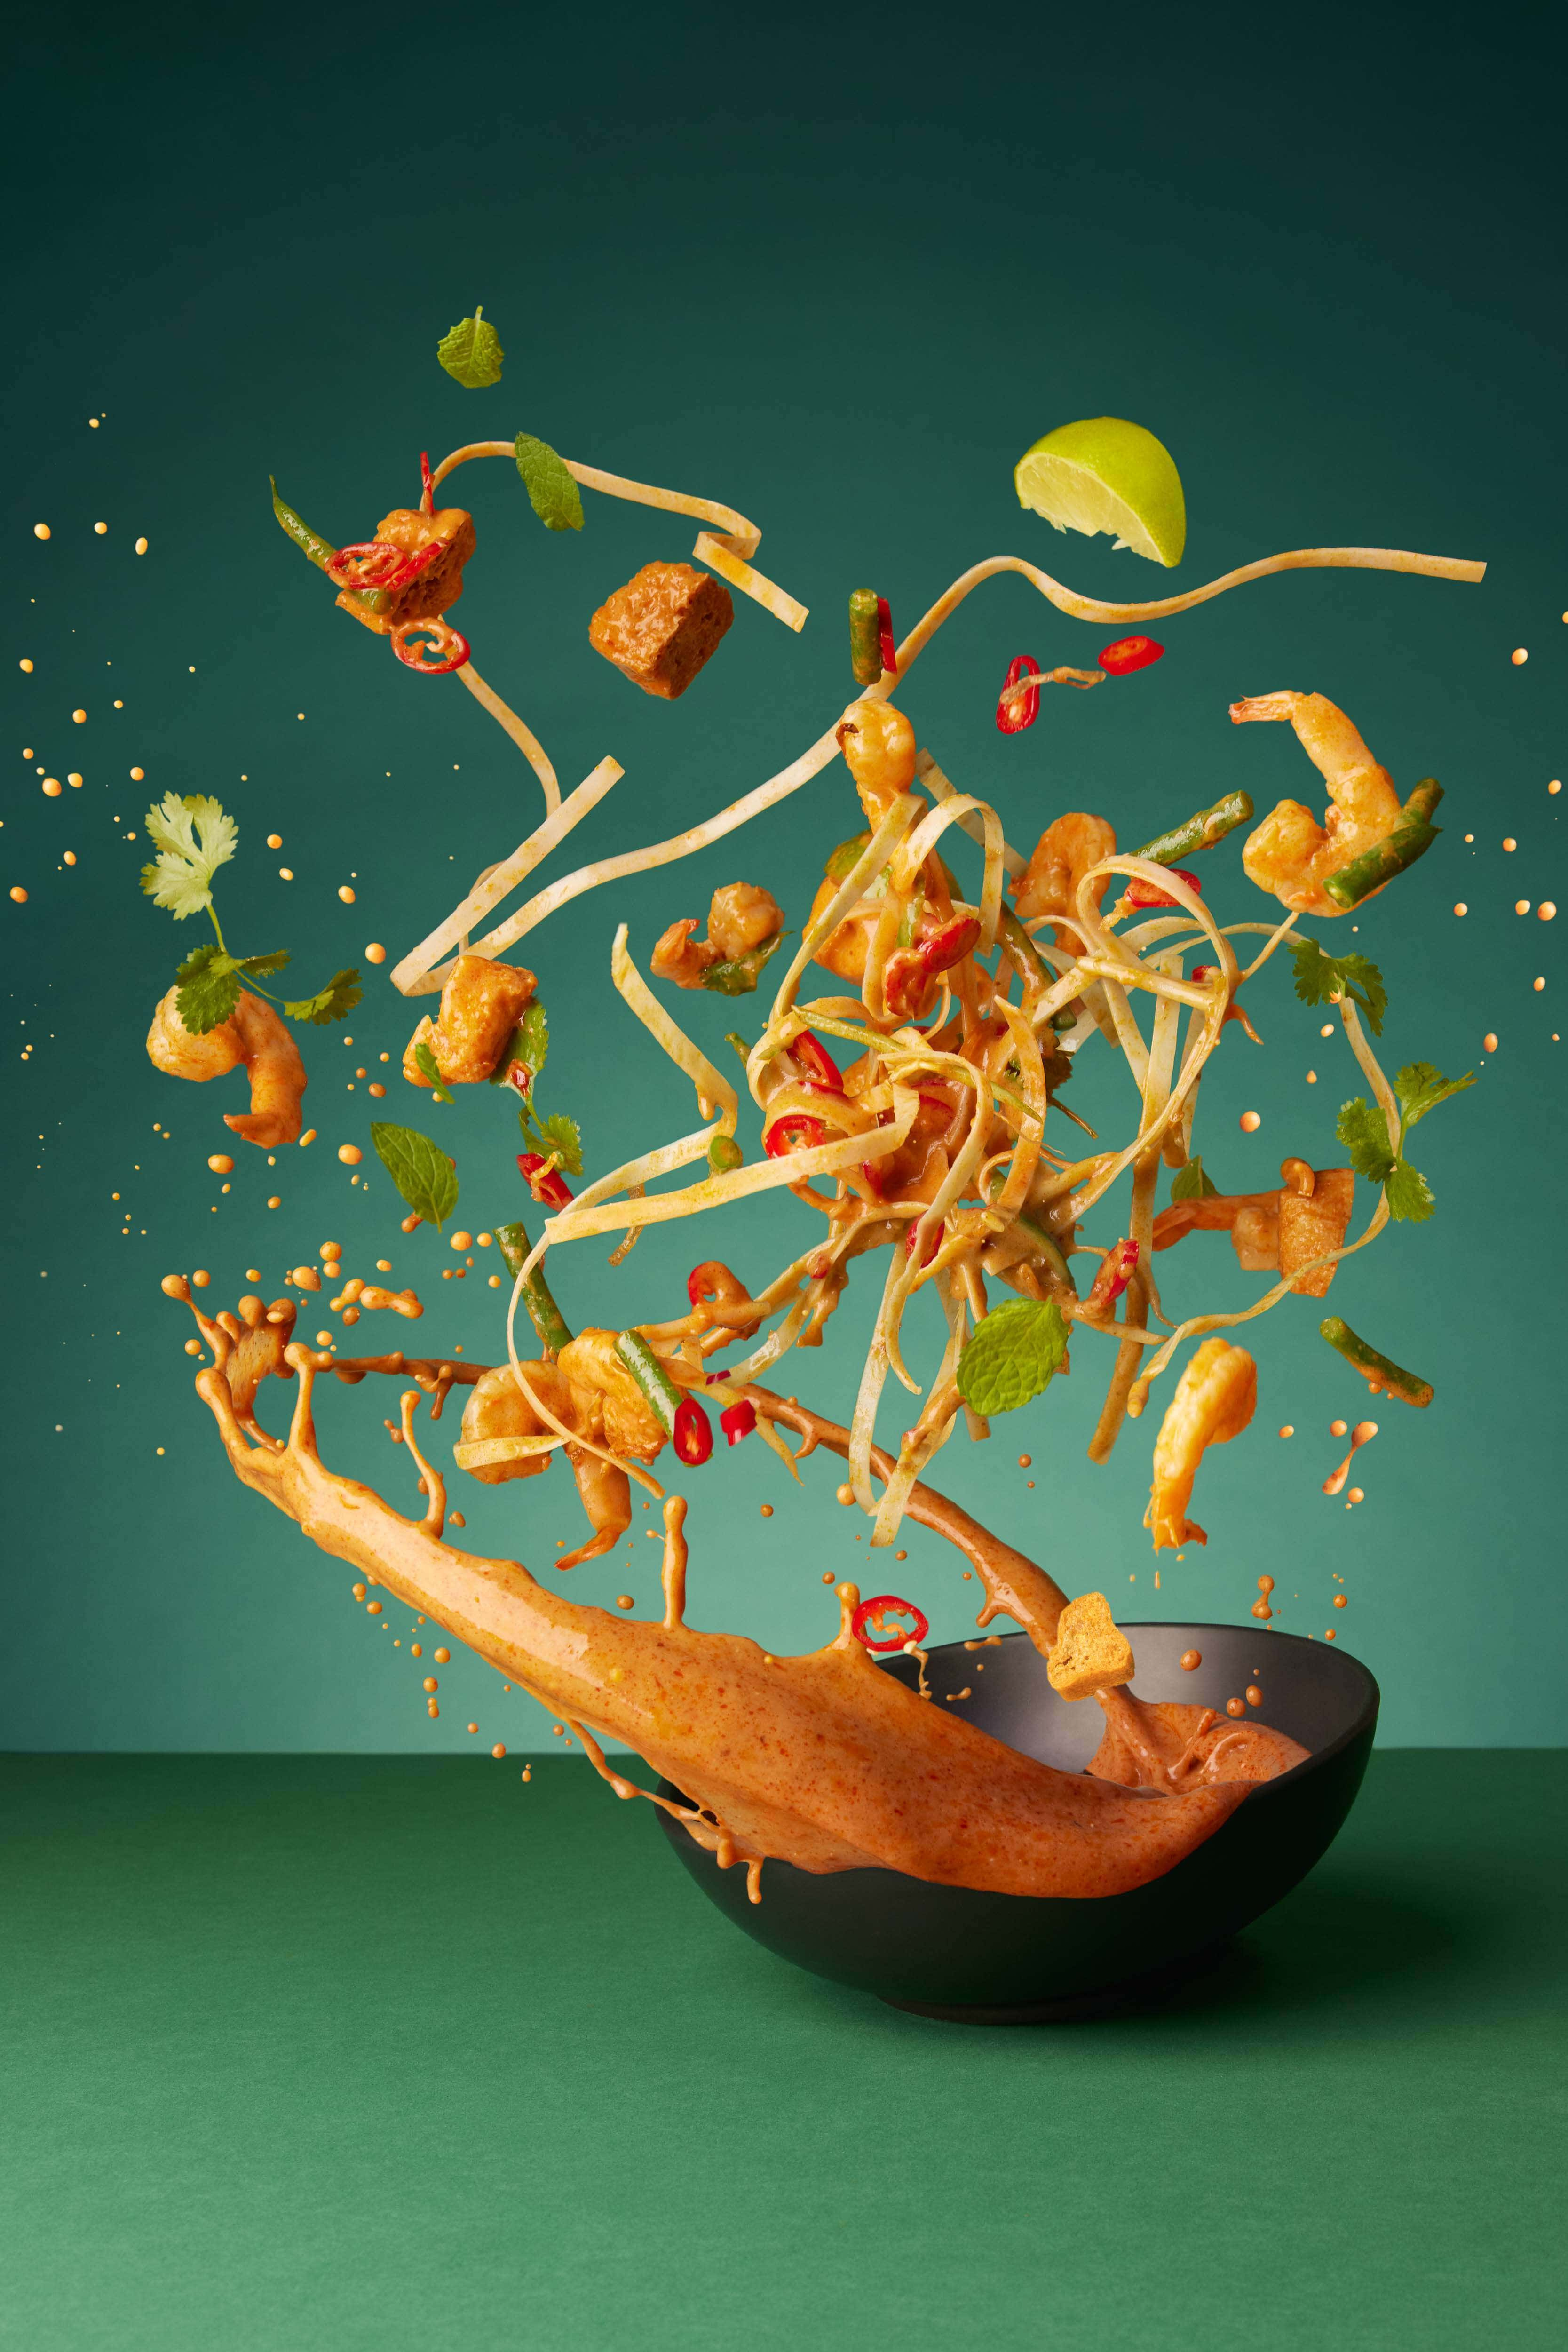 noodles flying through the air with prawns, chillis and tofu and other ingredients